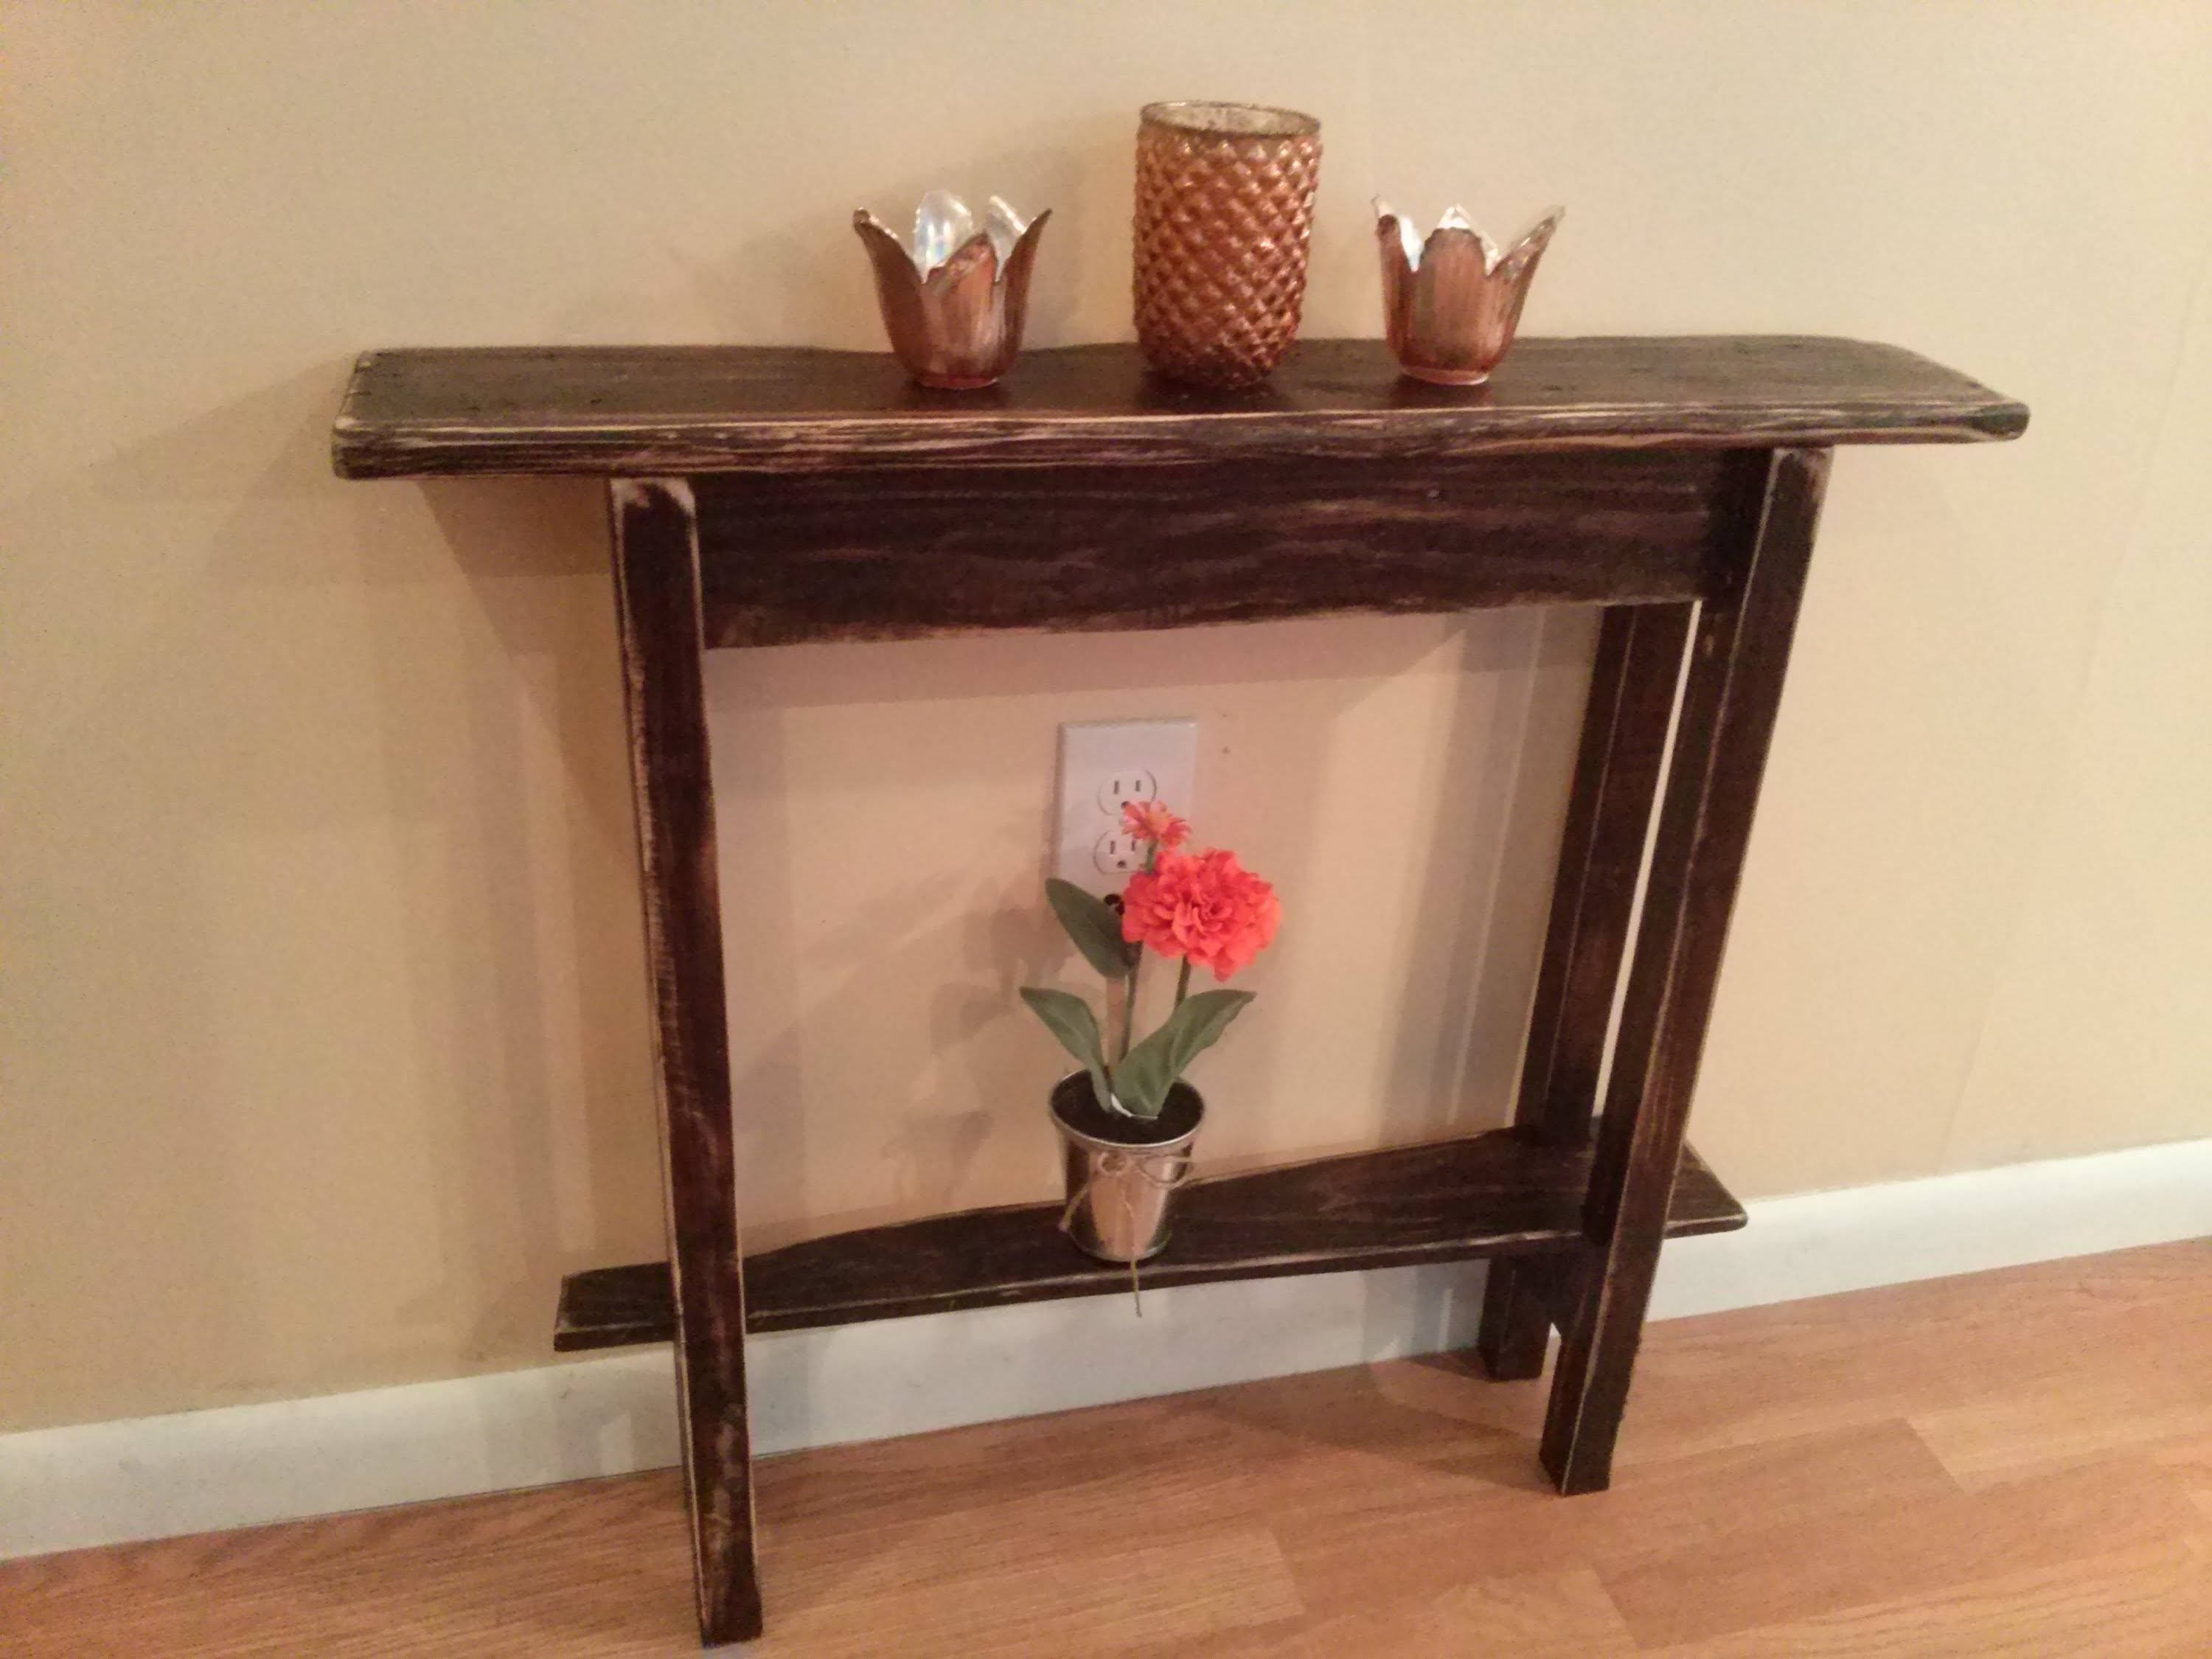 the perfect rustic end table designs jockboymusic woodworking accent maker video small desk with storage round cherry bedroom lamp sets centerpiece decoration ideas tables diy